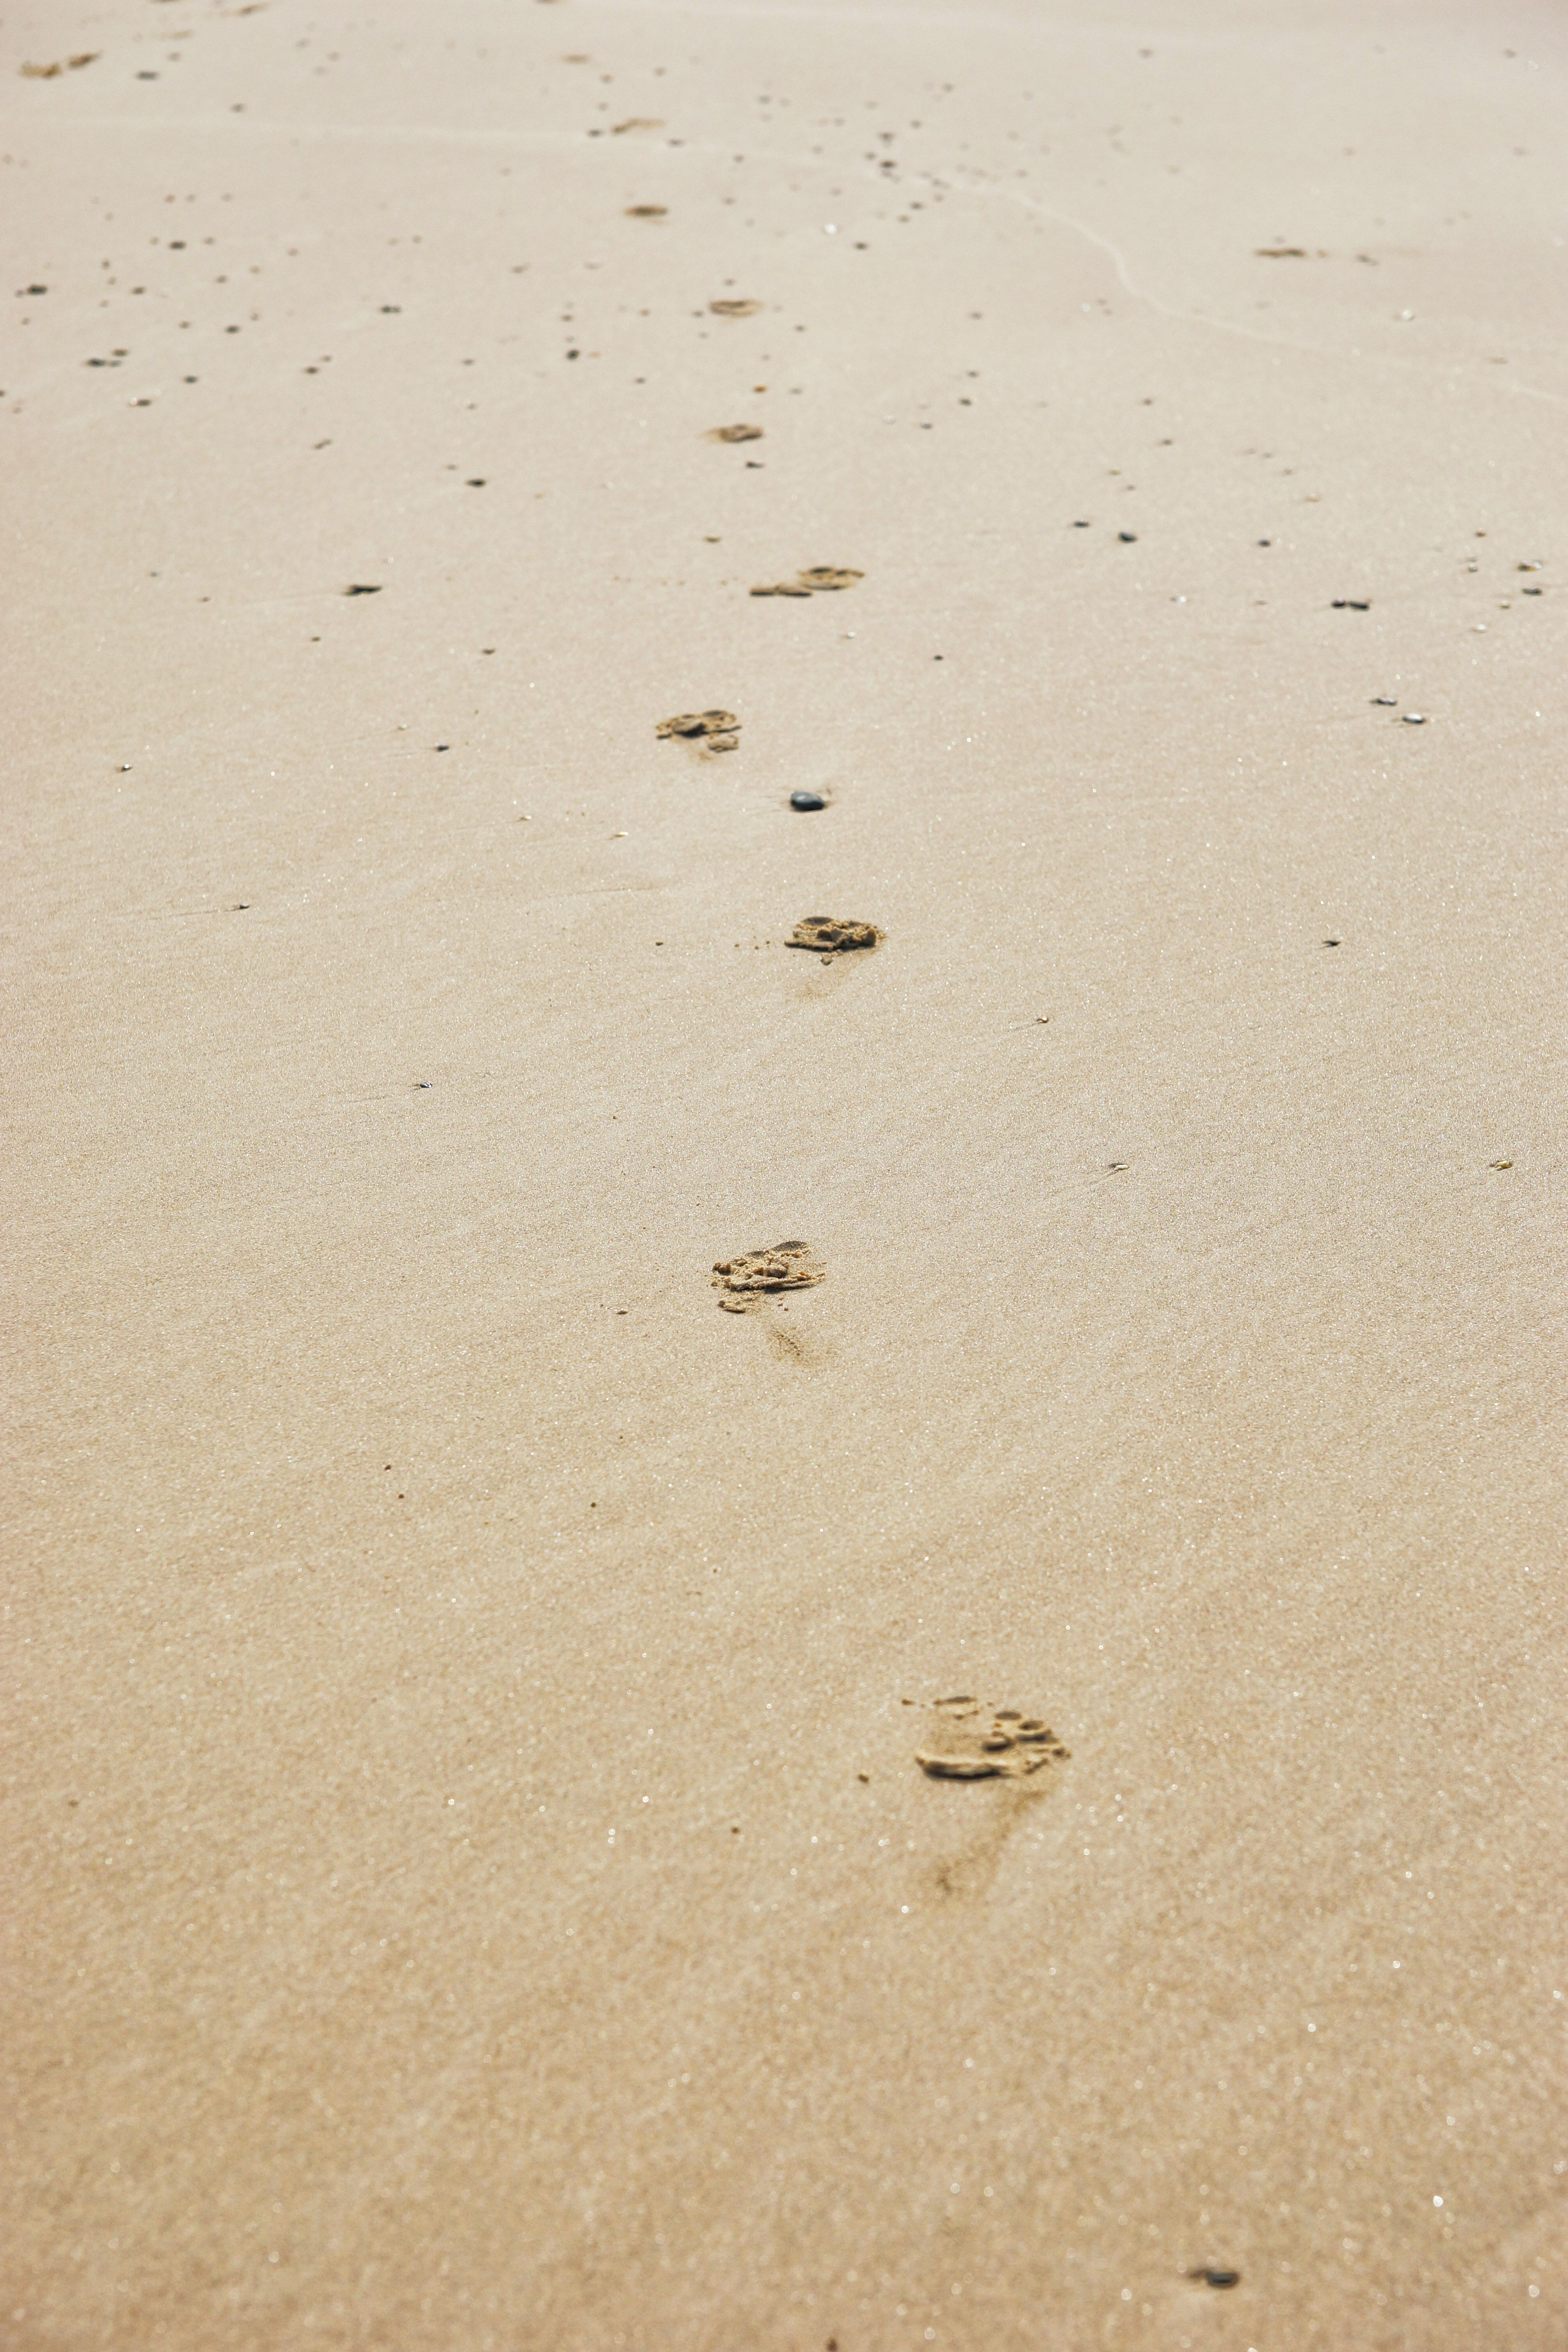 Two more free images of footprints in the sand - http://www.myfreetextures.com/two-free-images-footprints-sand/